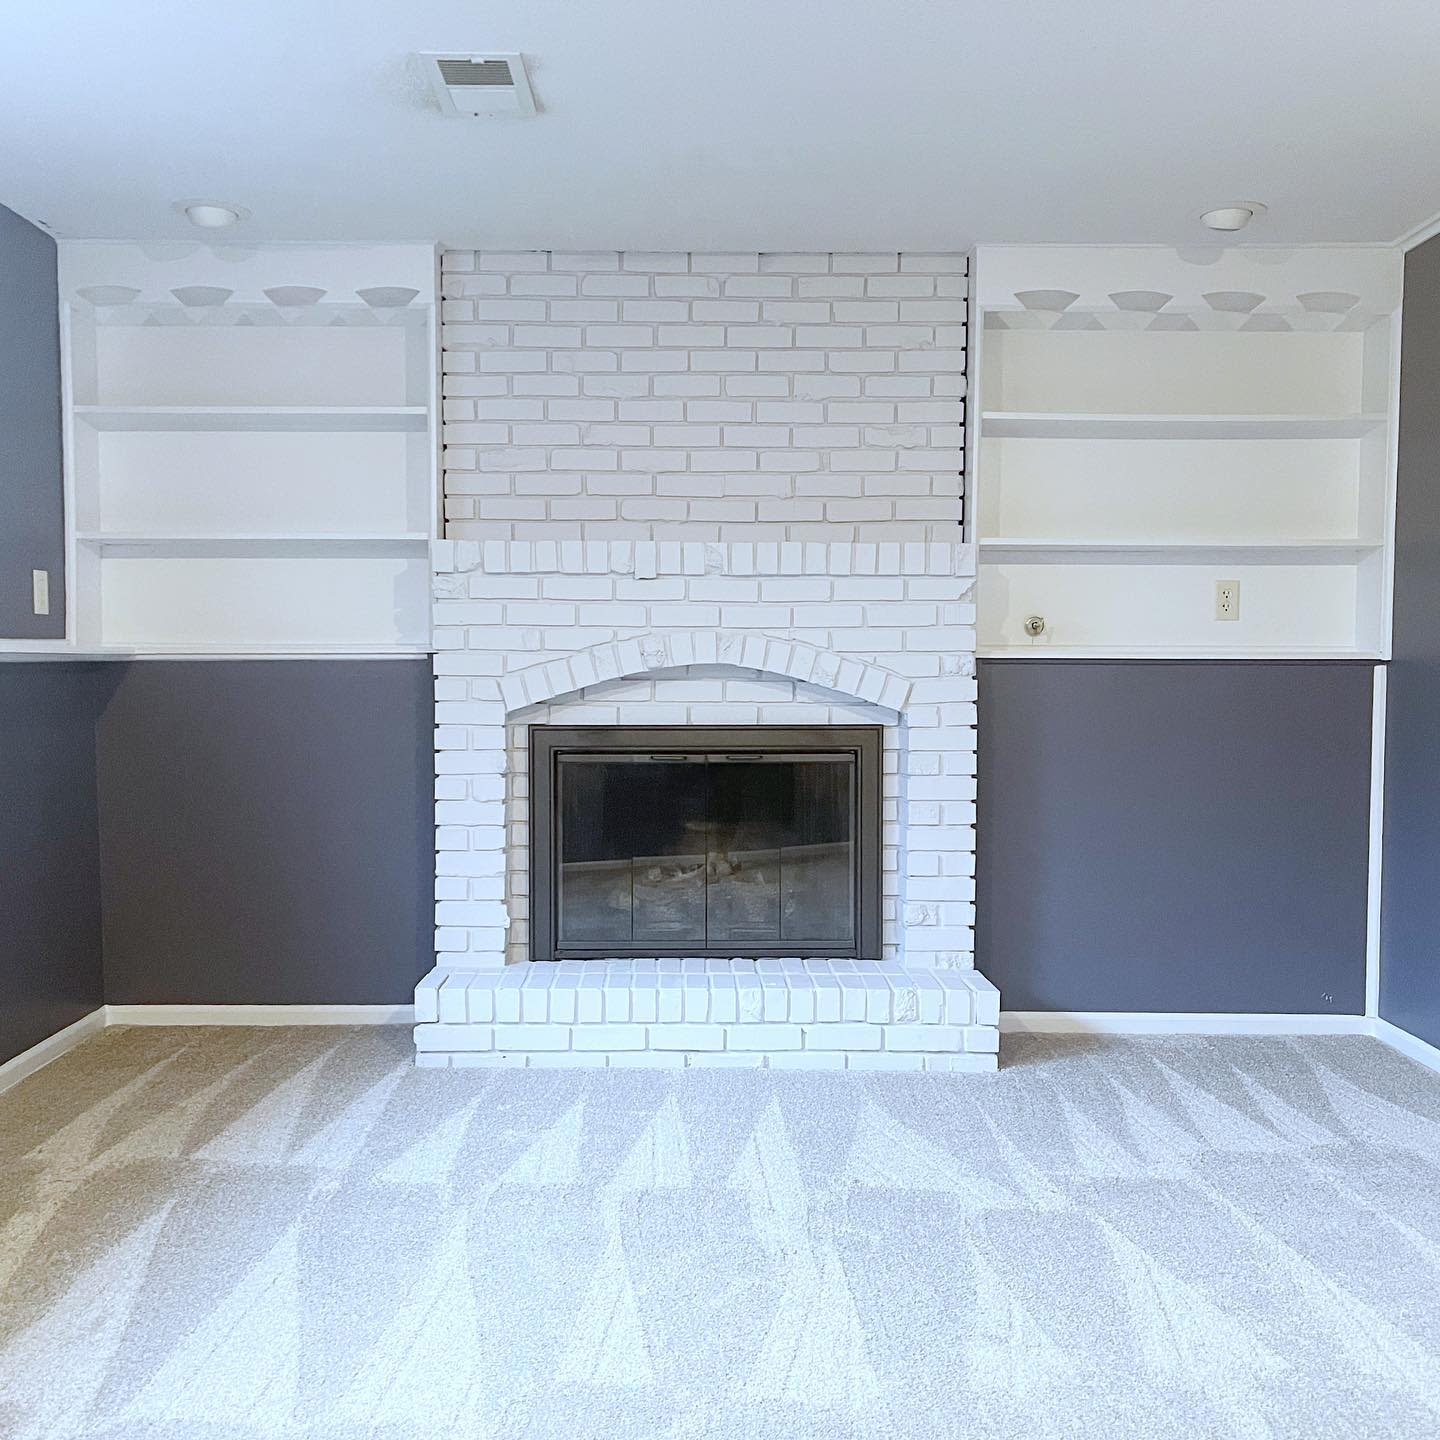 Brick Fireplace Tile Ideas -tap.to